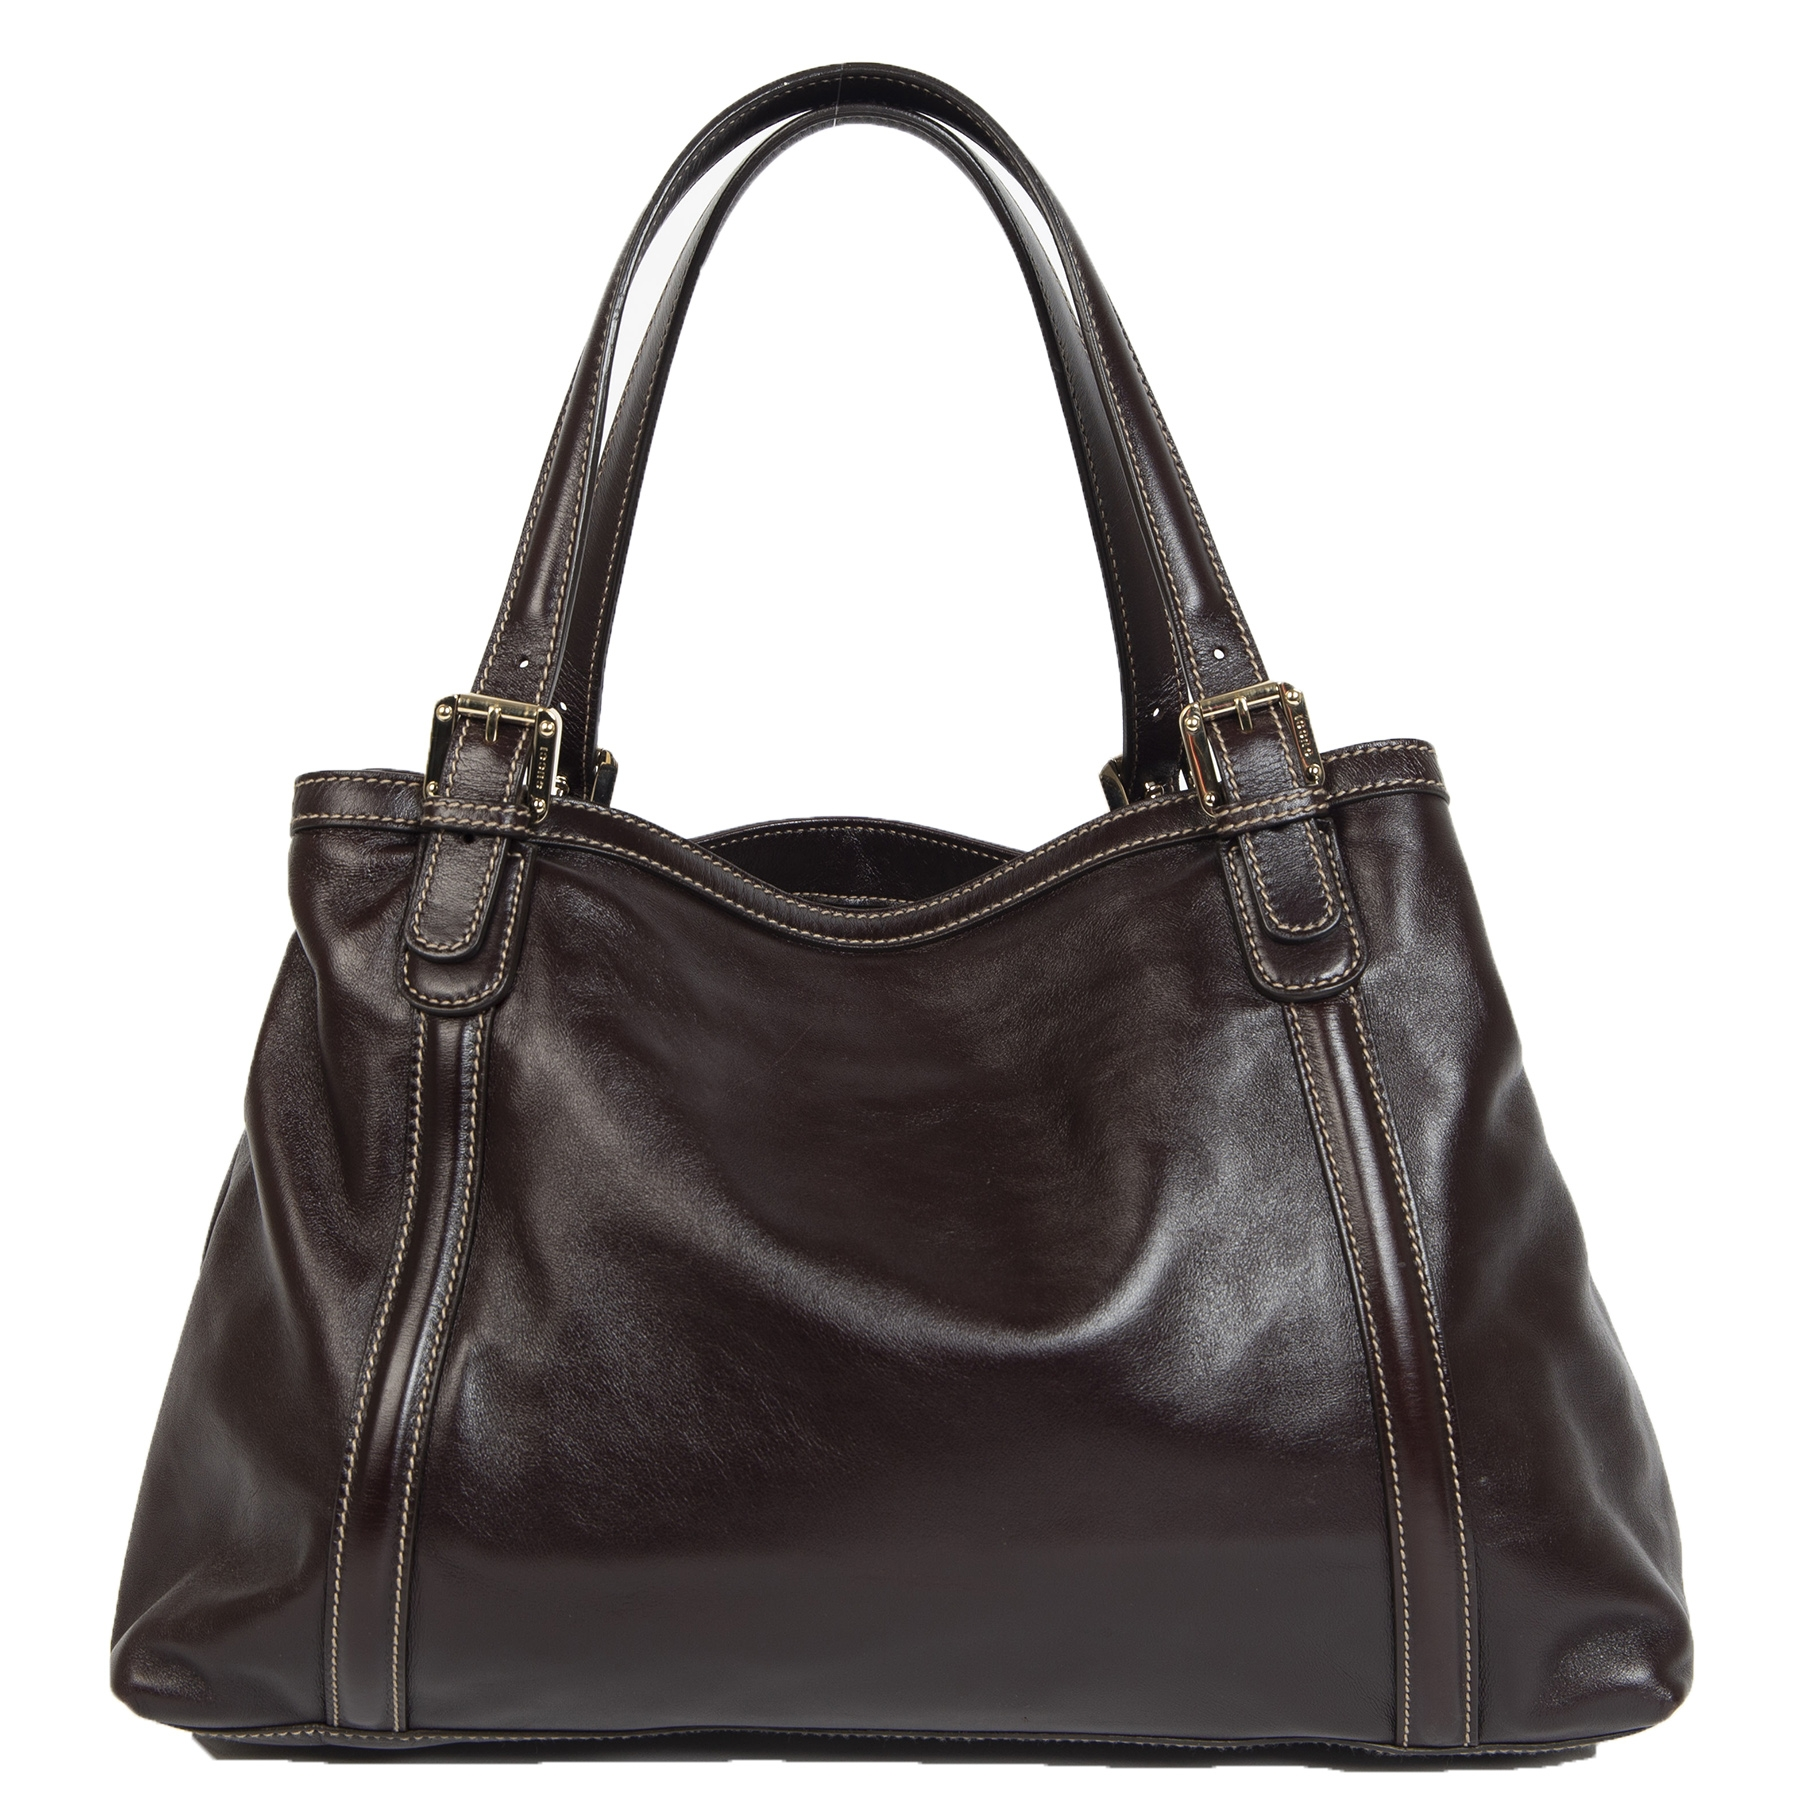 Gucci Interlocking GG Brown Leather Shopper